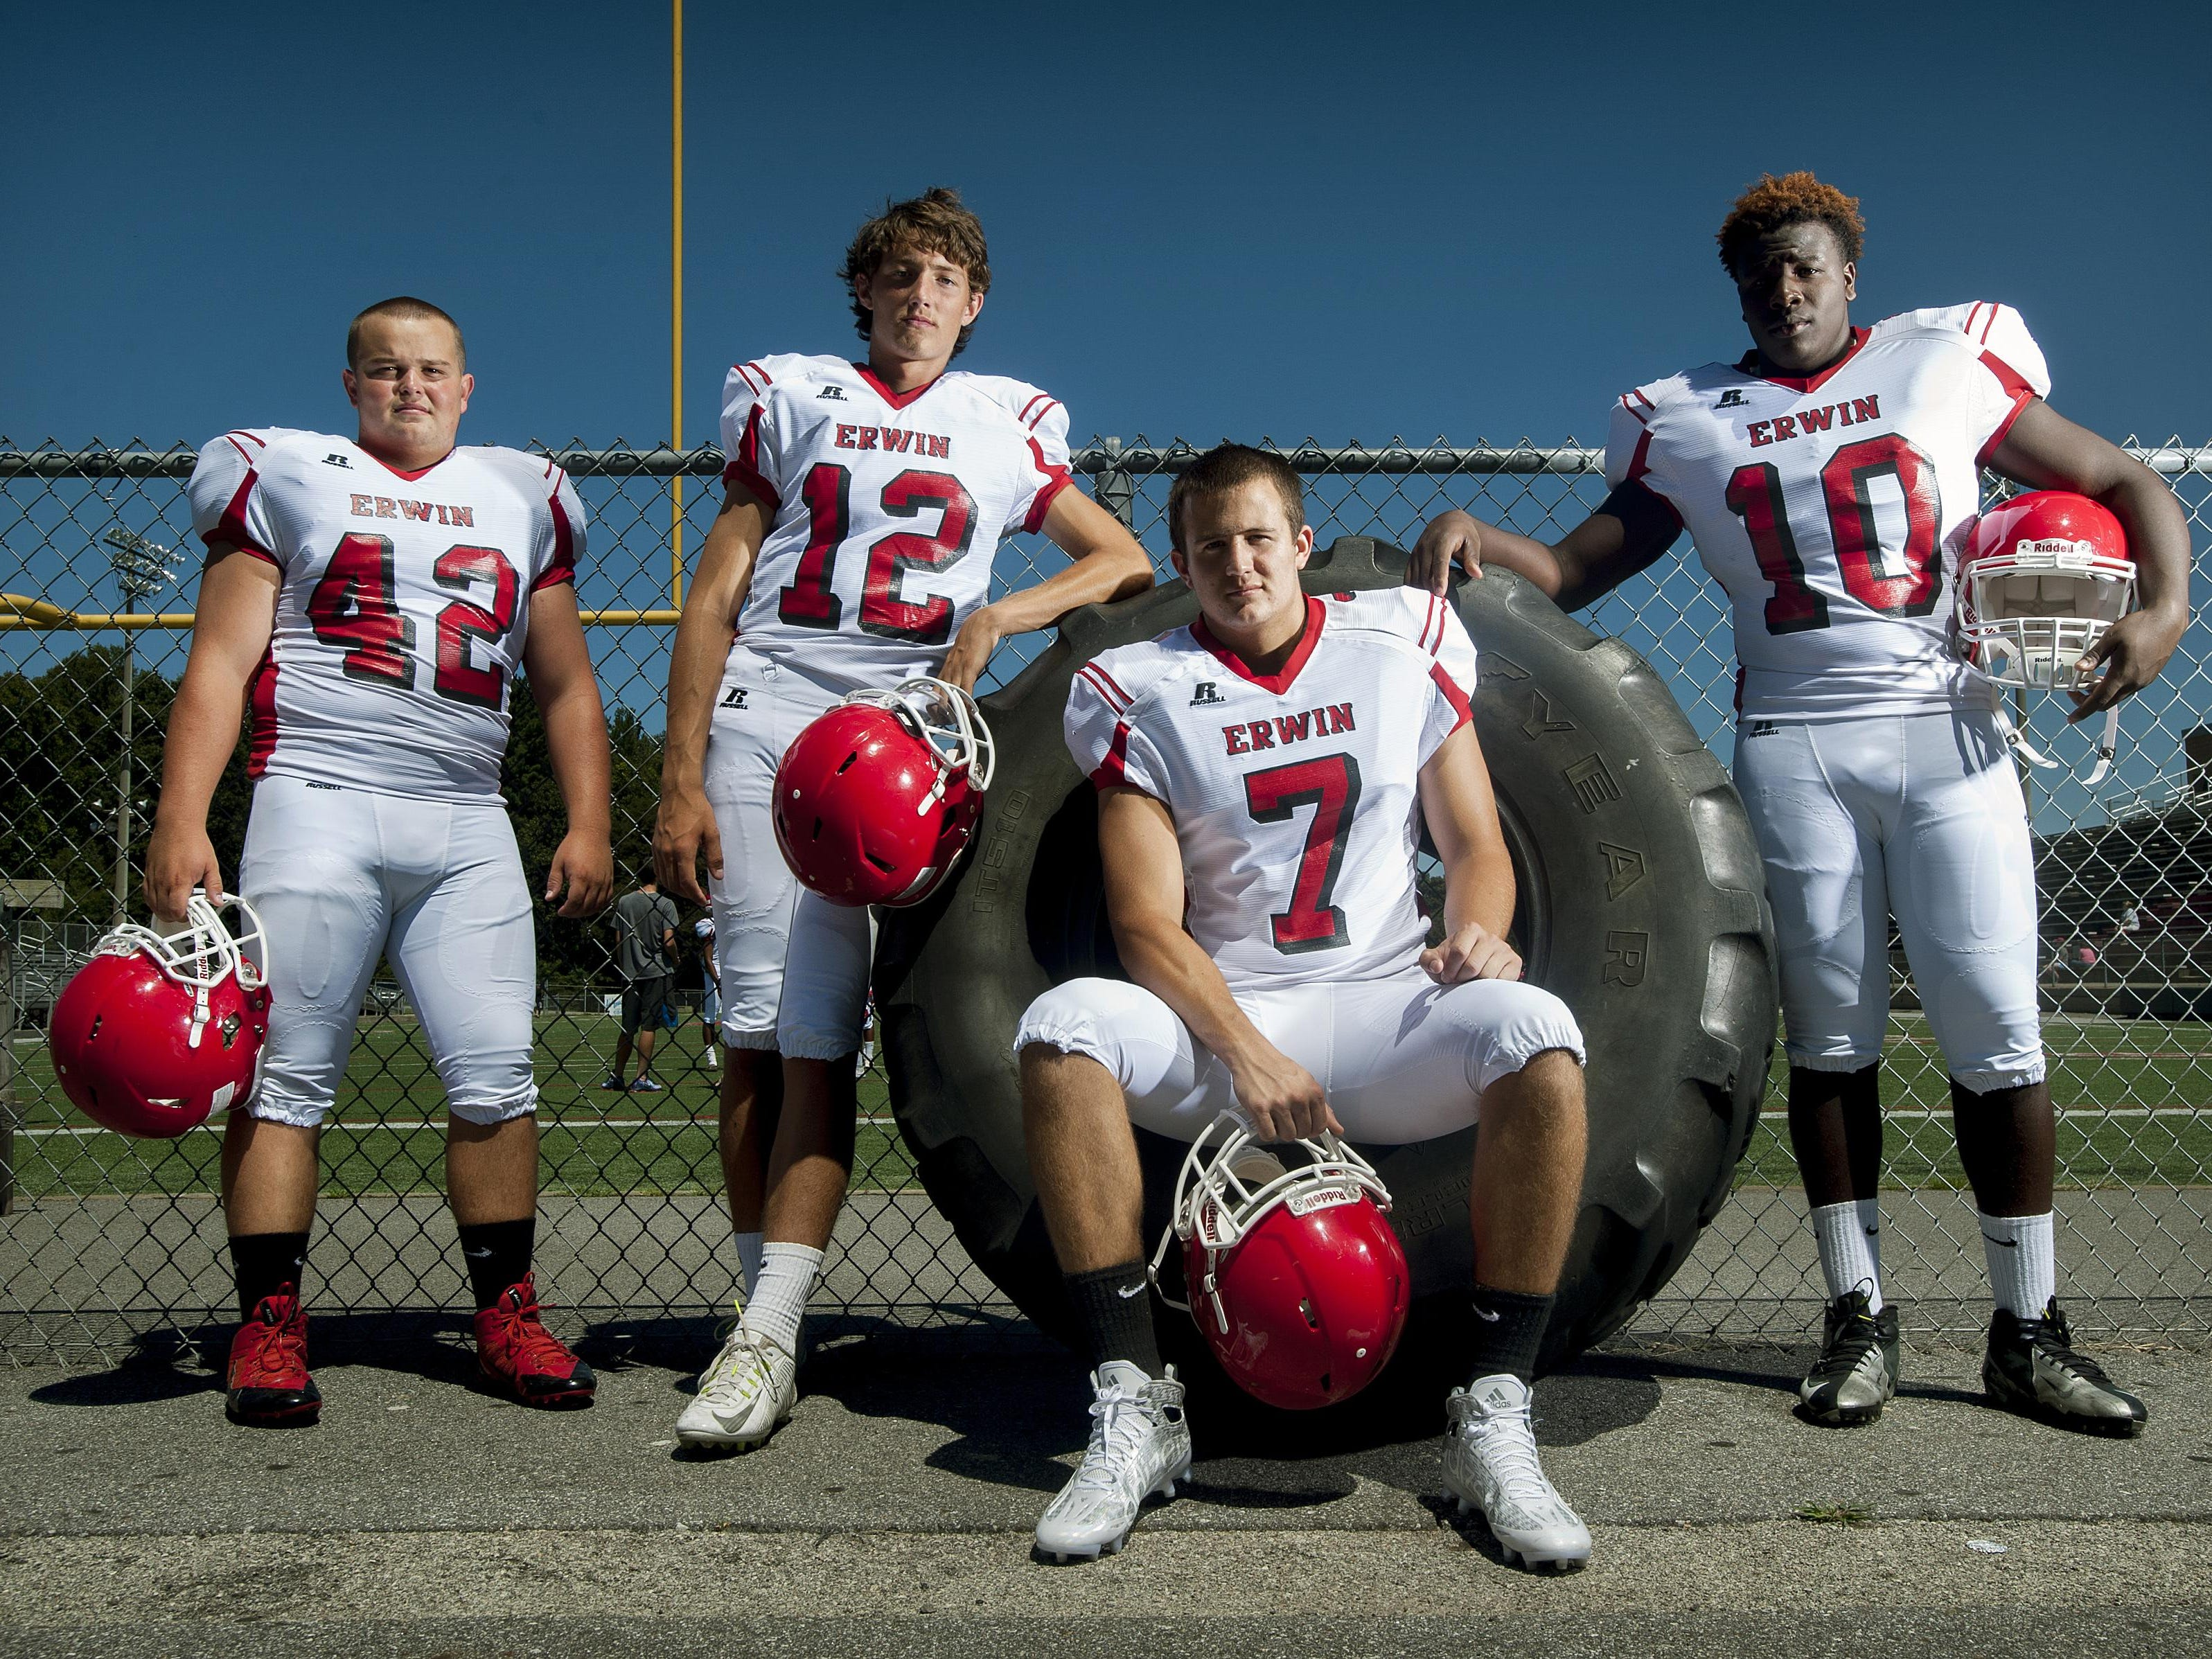 Erwin has four returning All-Mountain Athletic Conference football players, from left to right, Trevor Franklin, Damien Ferguson, Chase Austin and Rayonte Mills.